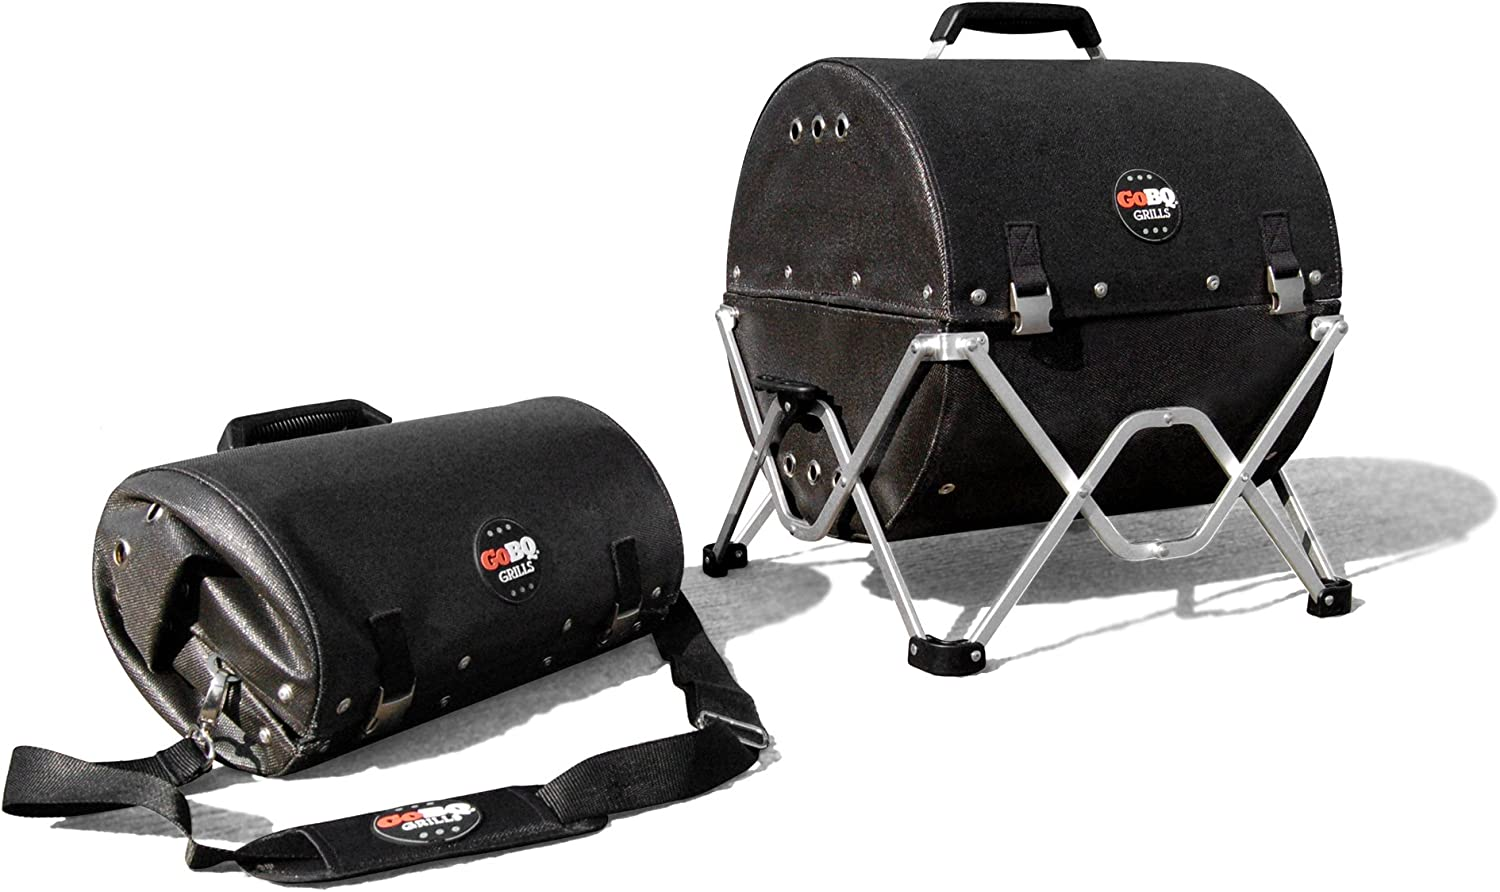 Image of the GoBQ portable charcoal grill with collapsible stand, black, lid closed. with a stroage bag beside it.